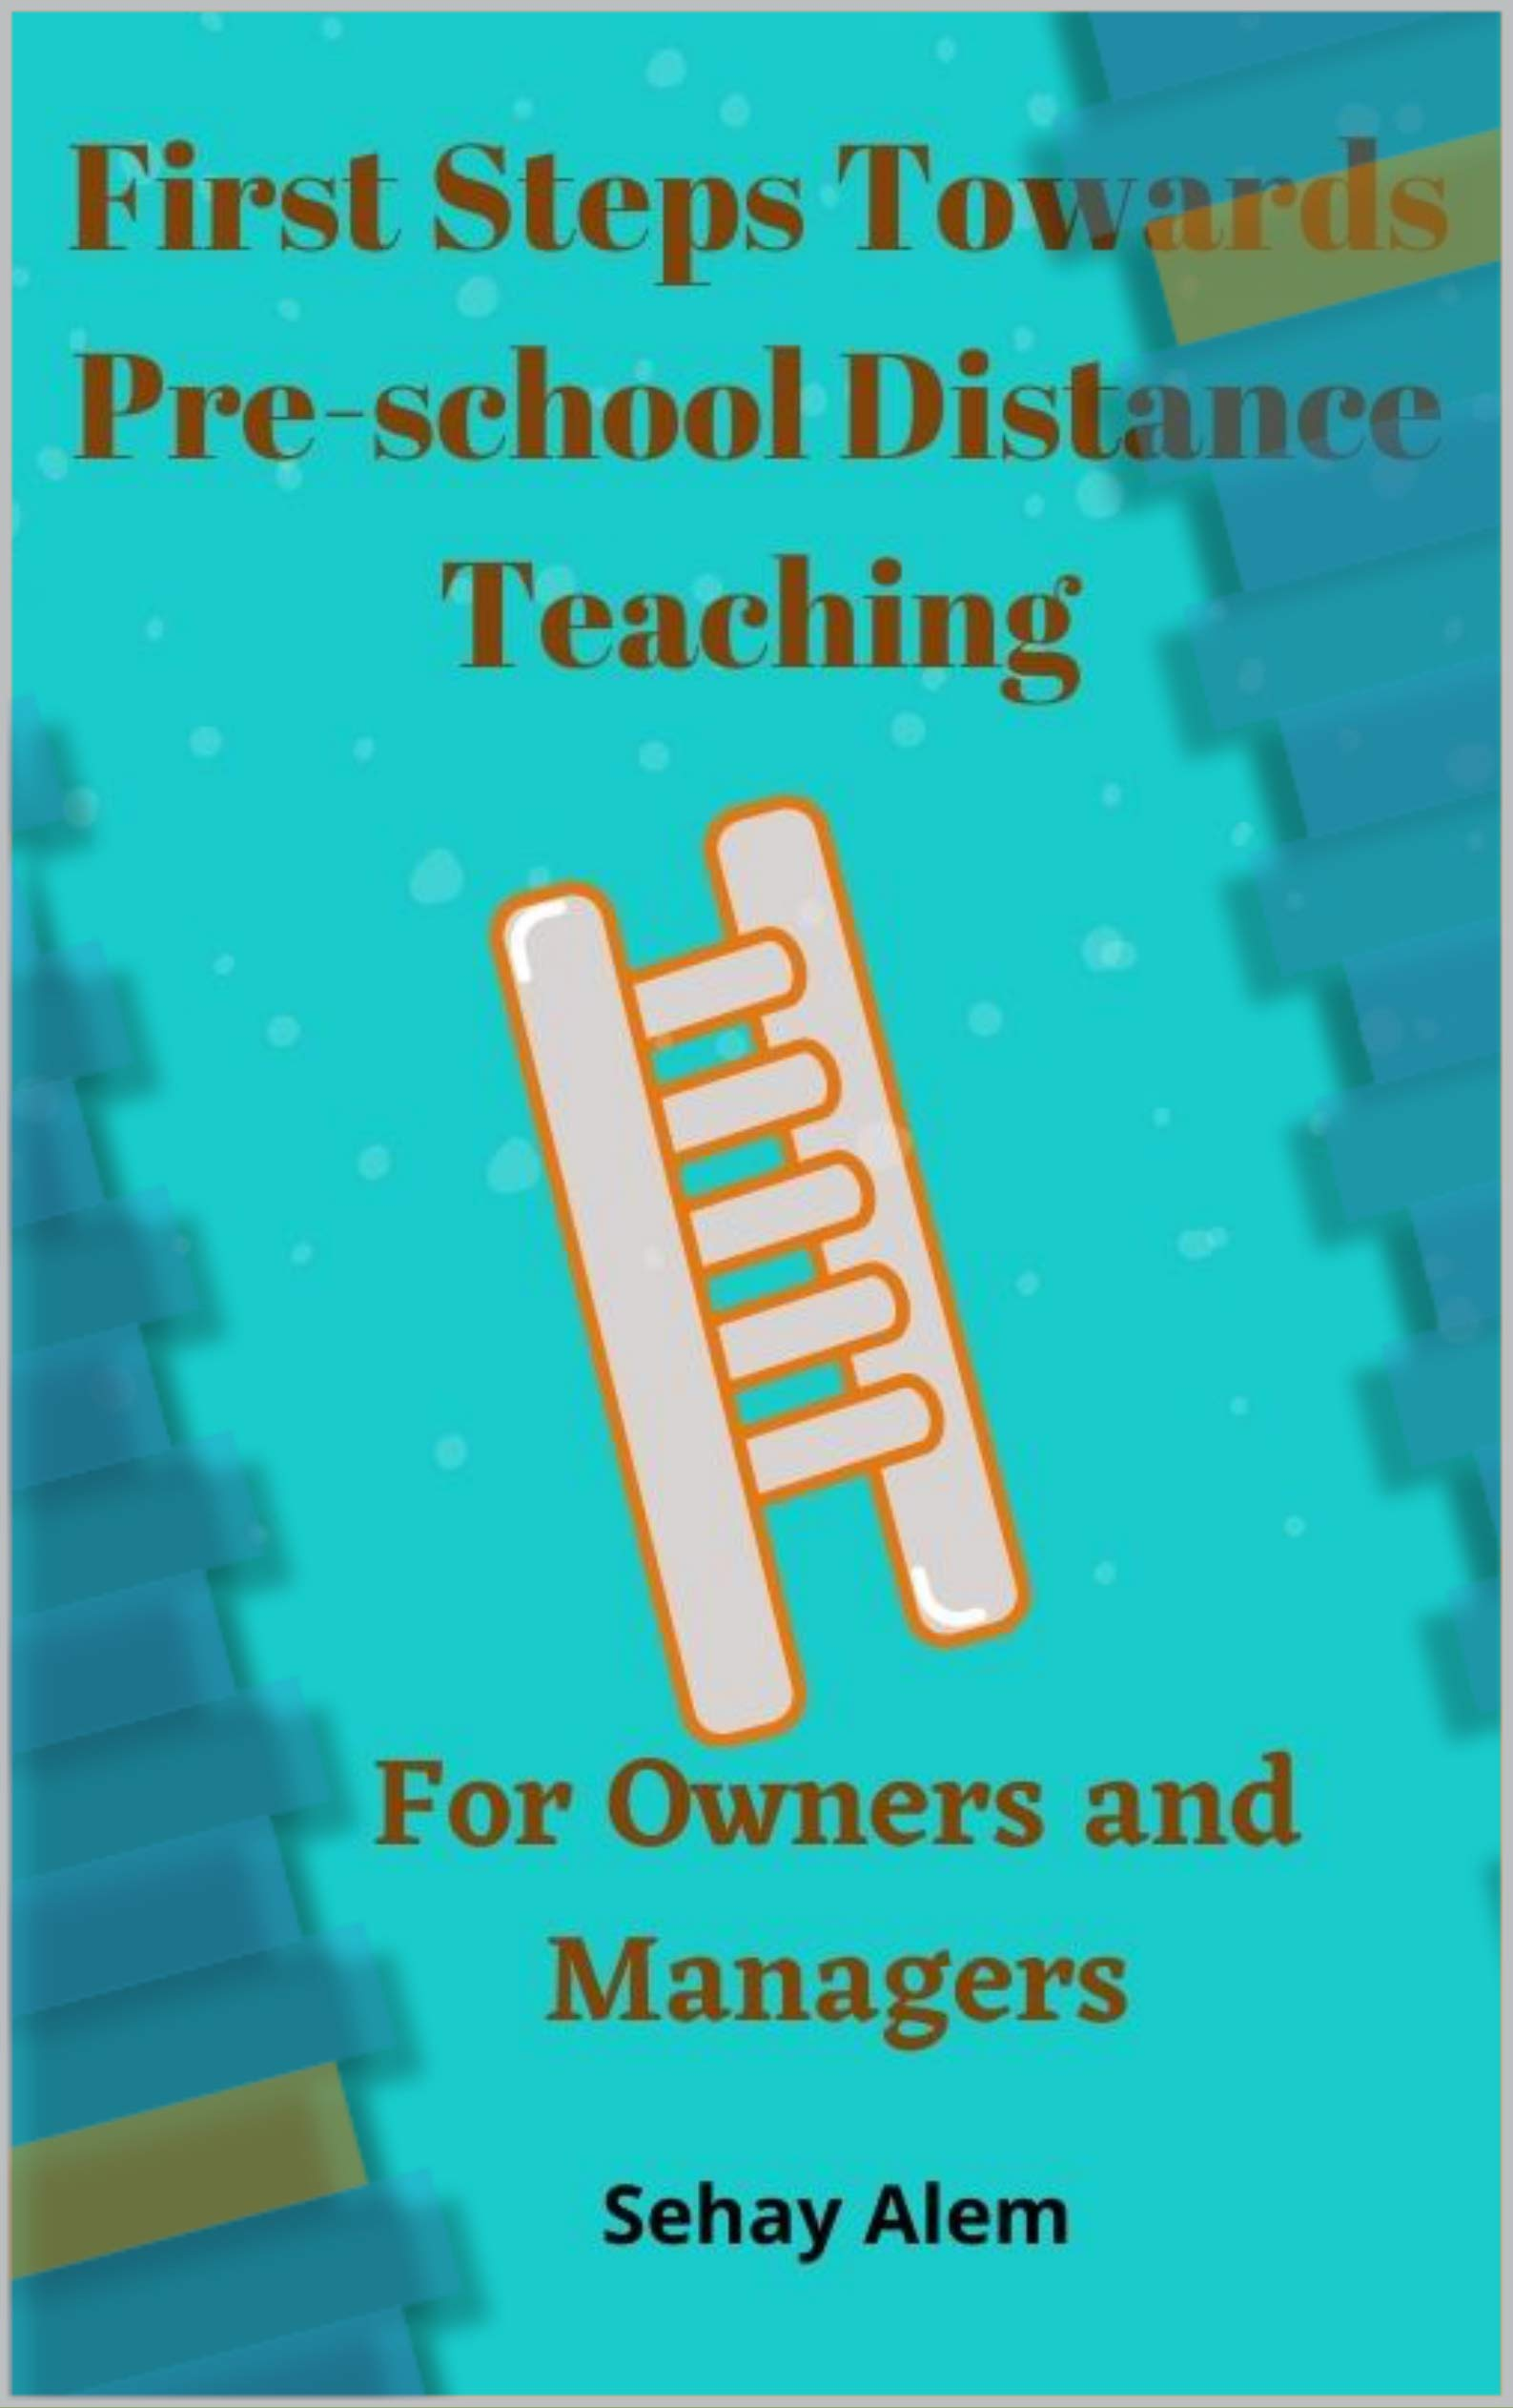 First Steps Towards Pre-school Distance Teaching: For Owners and Managers